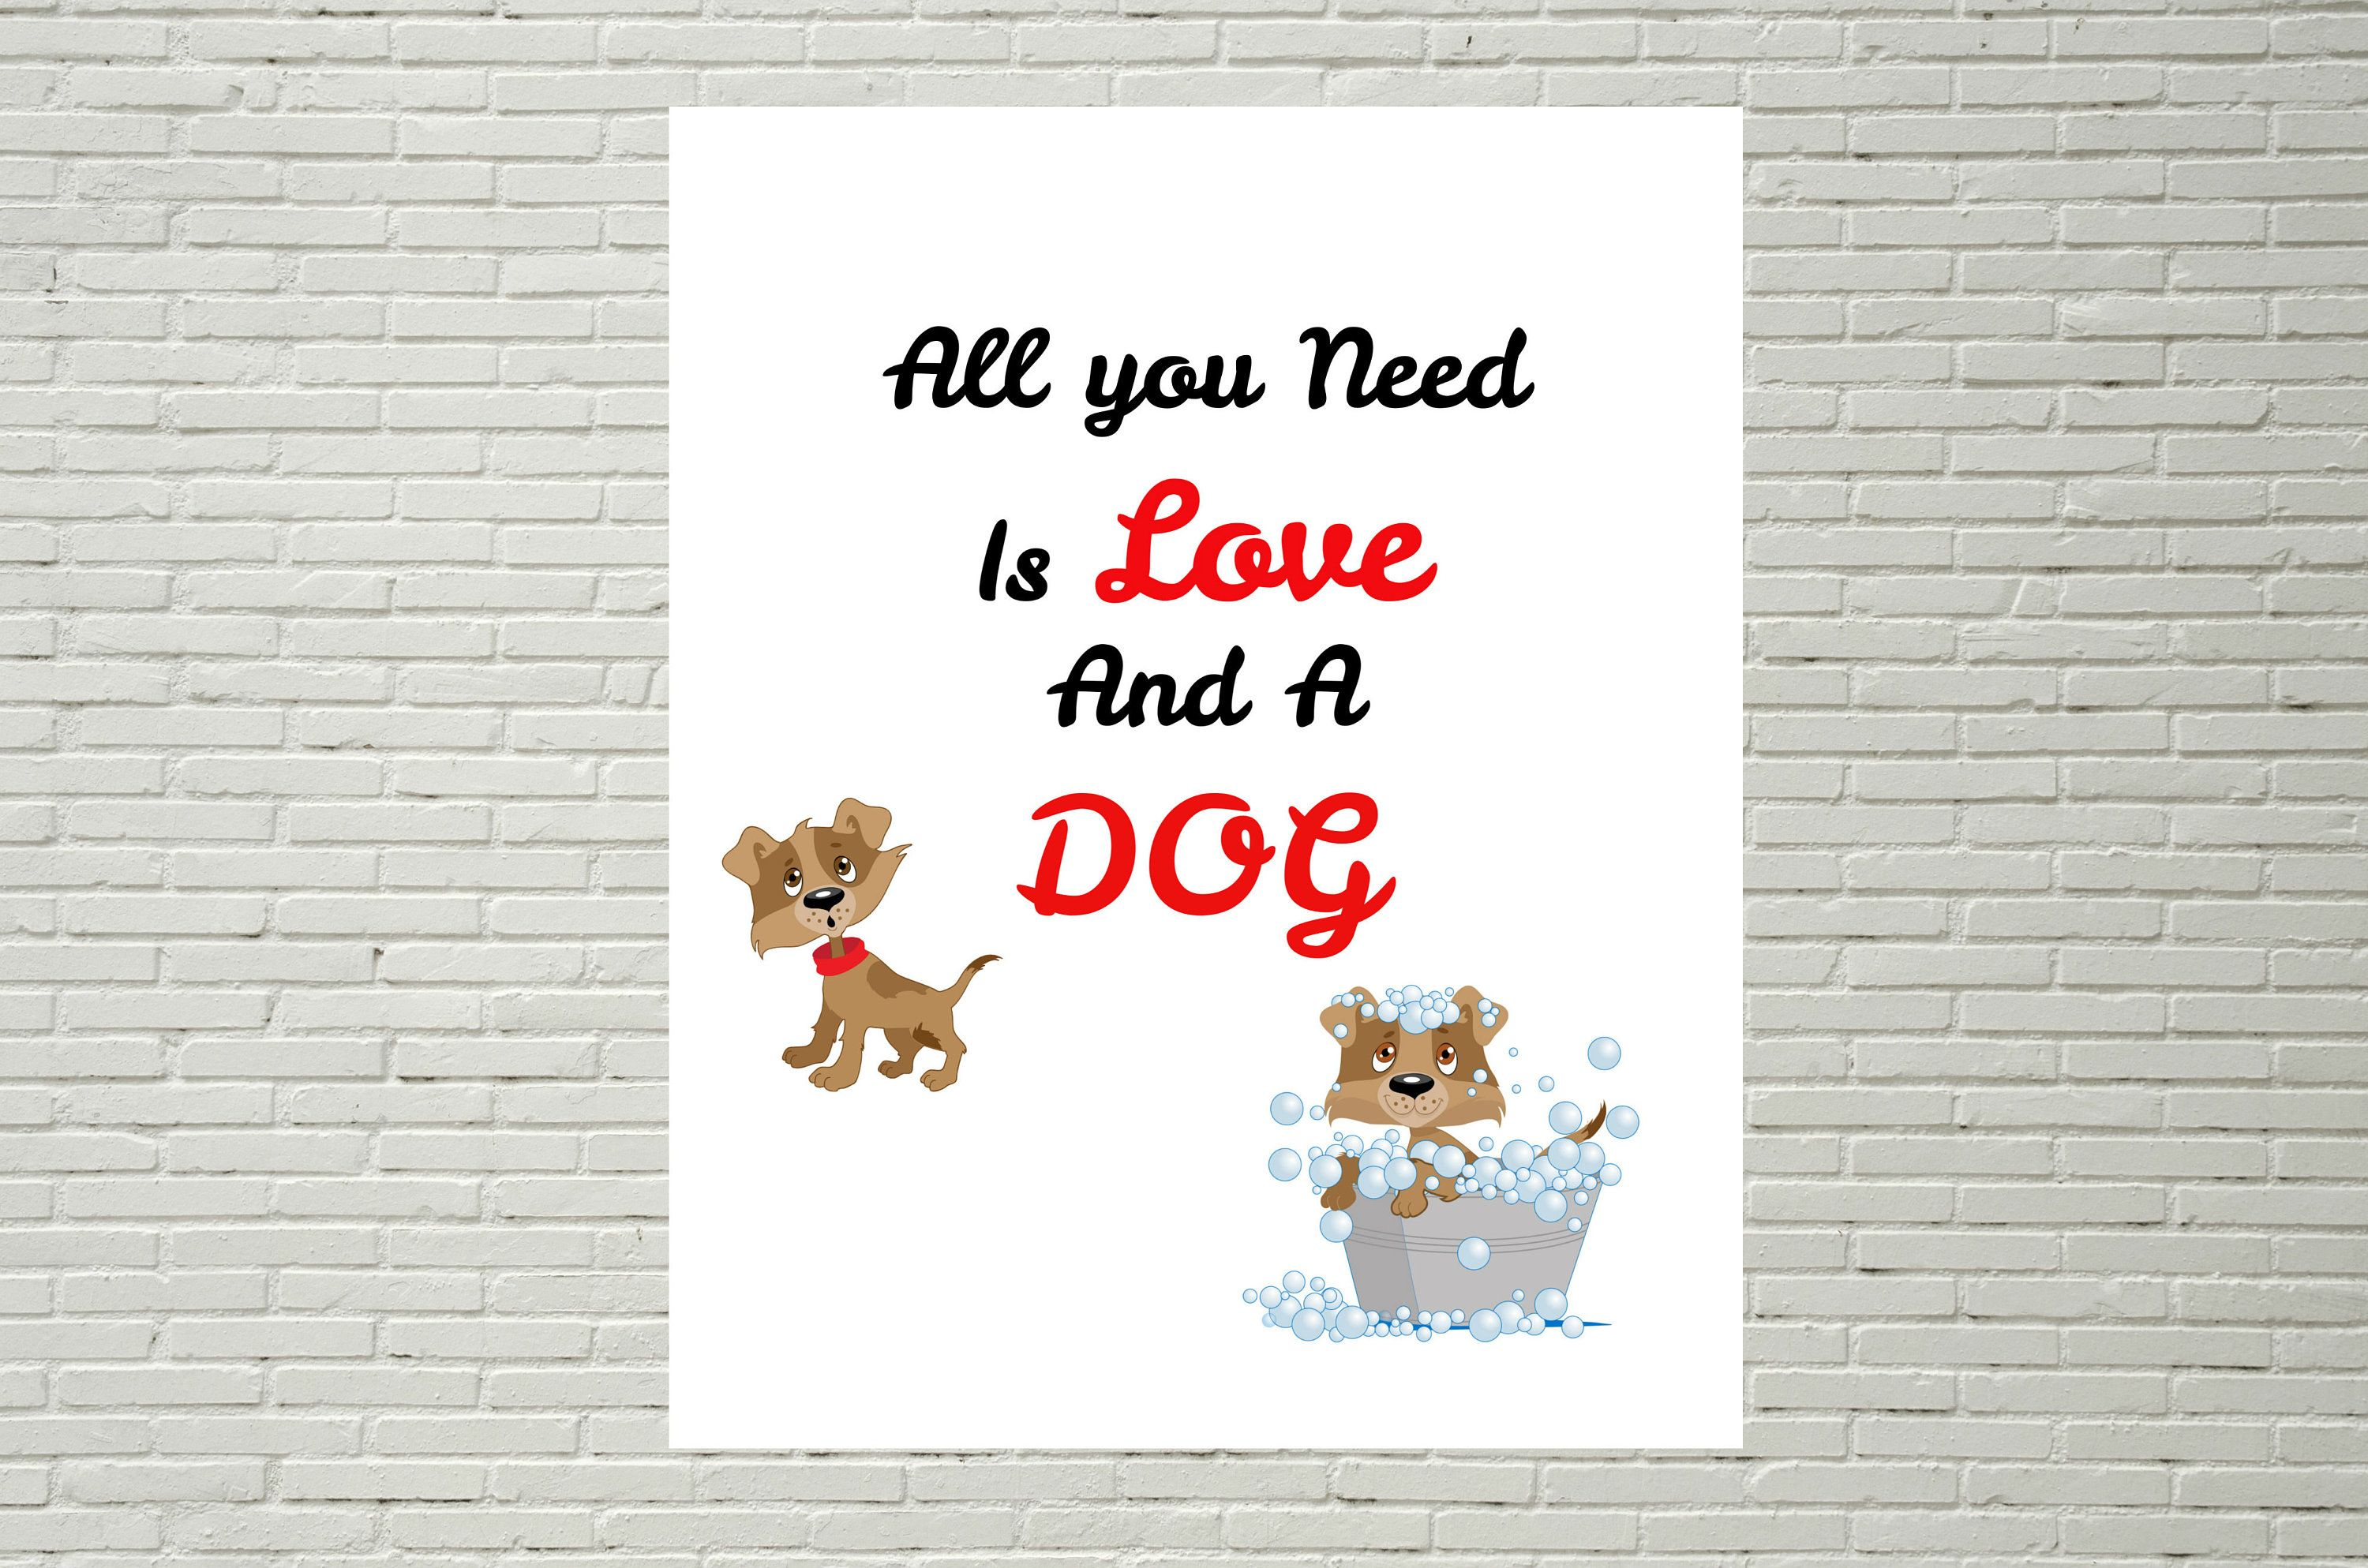 All You Need Is Love And Dog Wall Decor 5x7 8x10 11x14 11x17 16x20 By Blossomsprintables On Etsy All You Need Is Love Dog Wall Decor Wall Decor